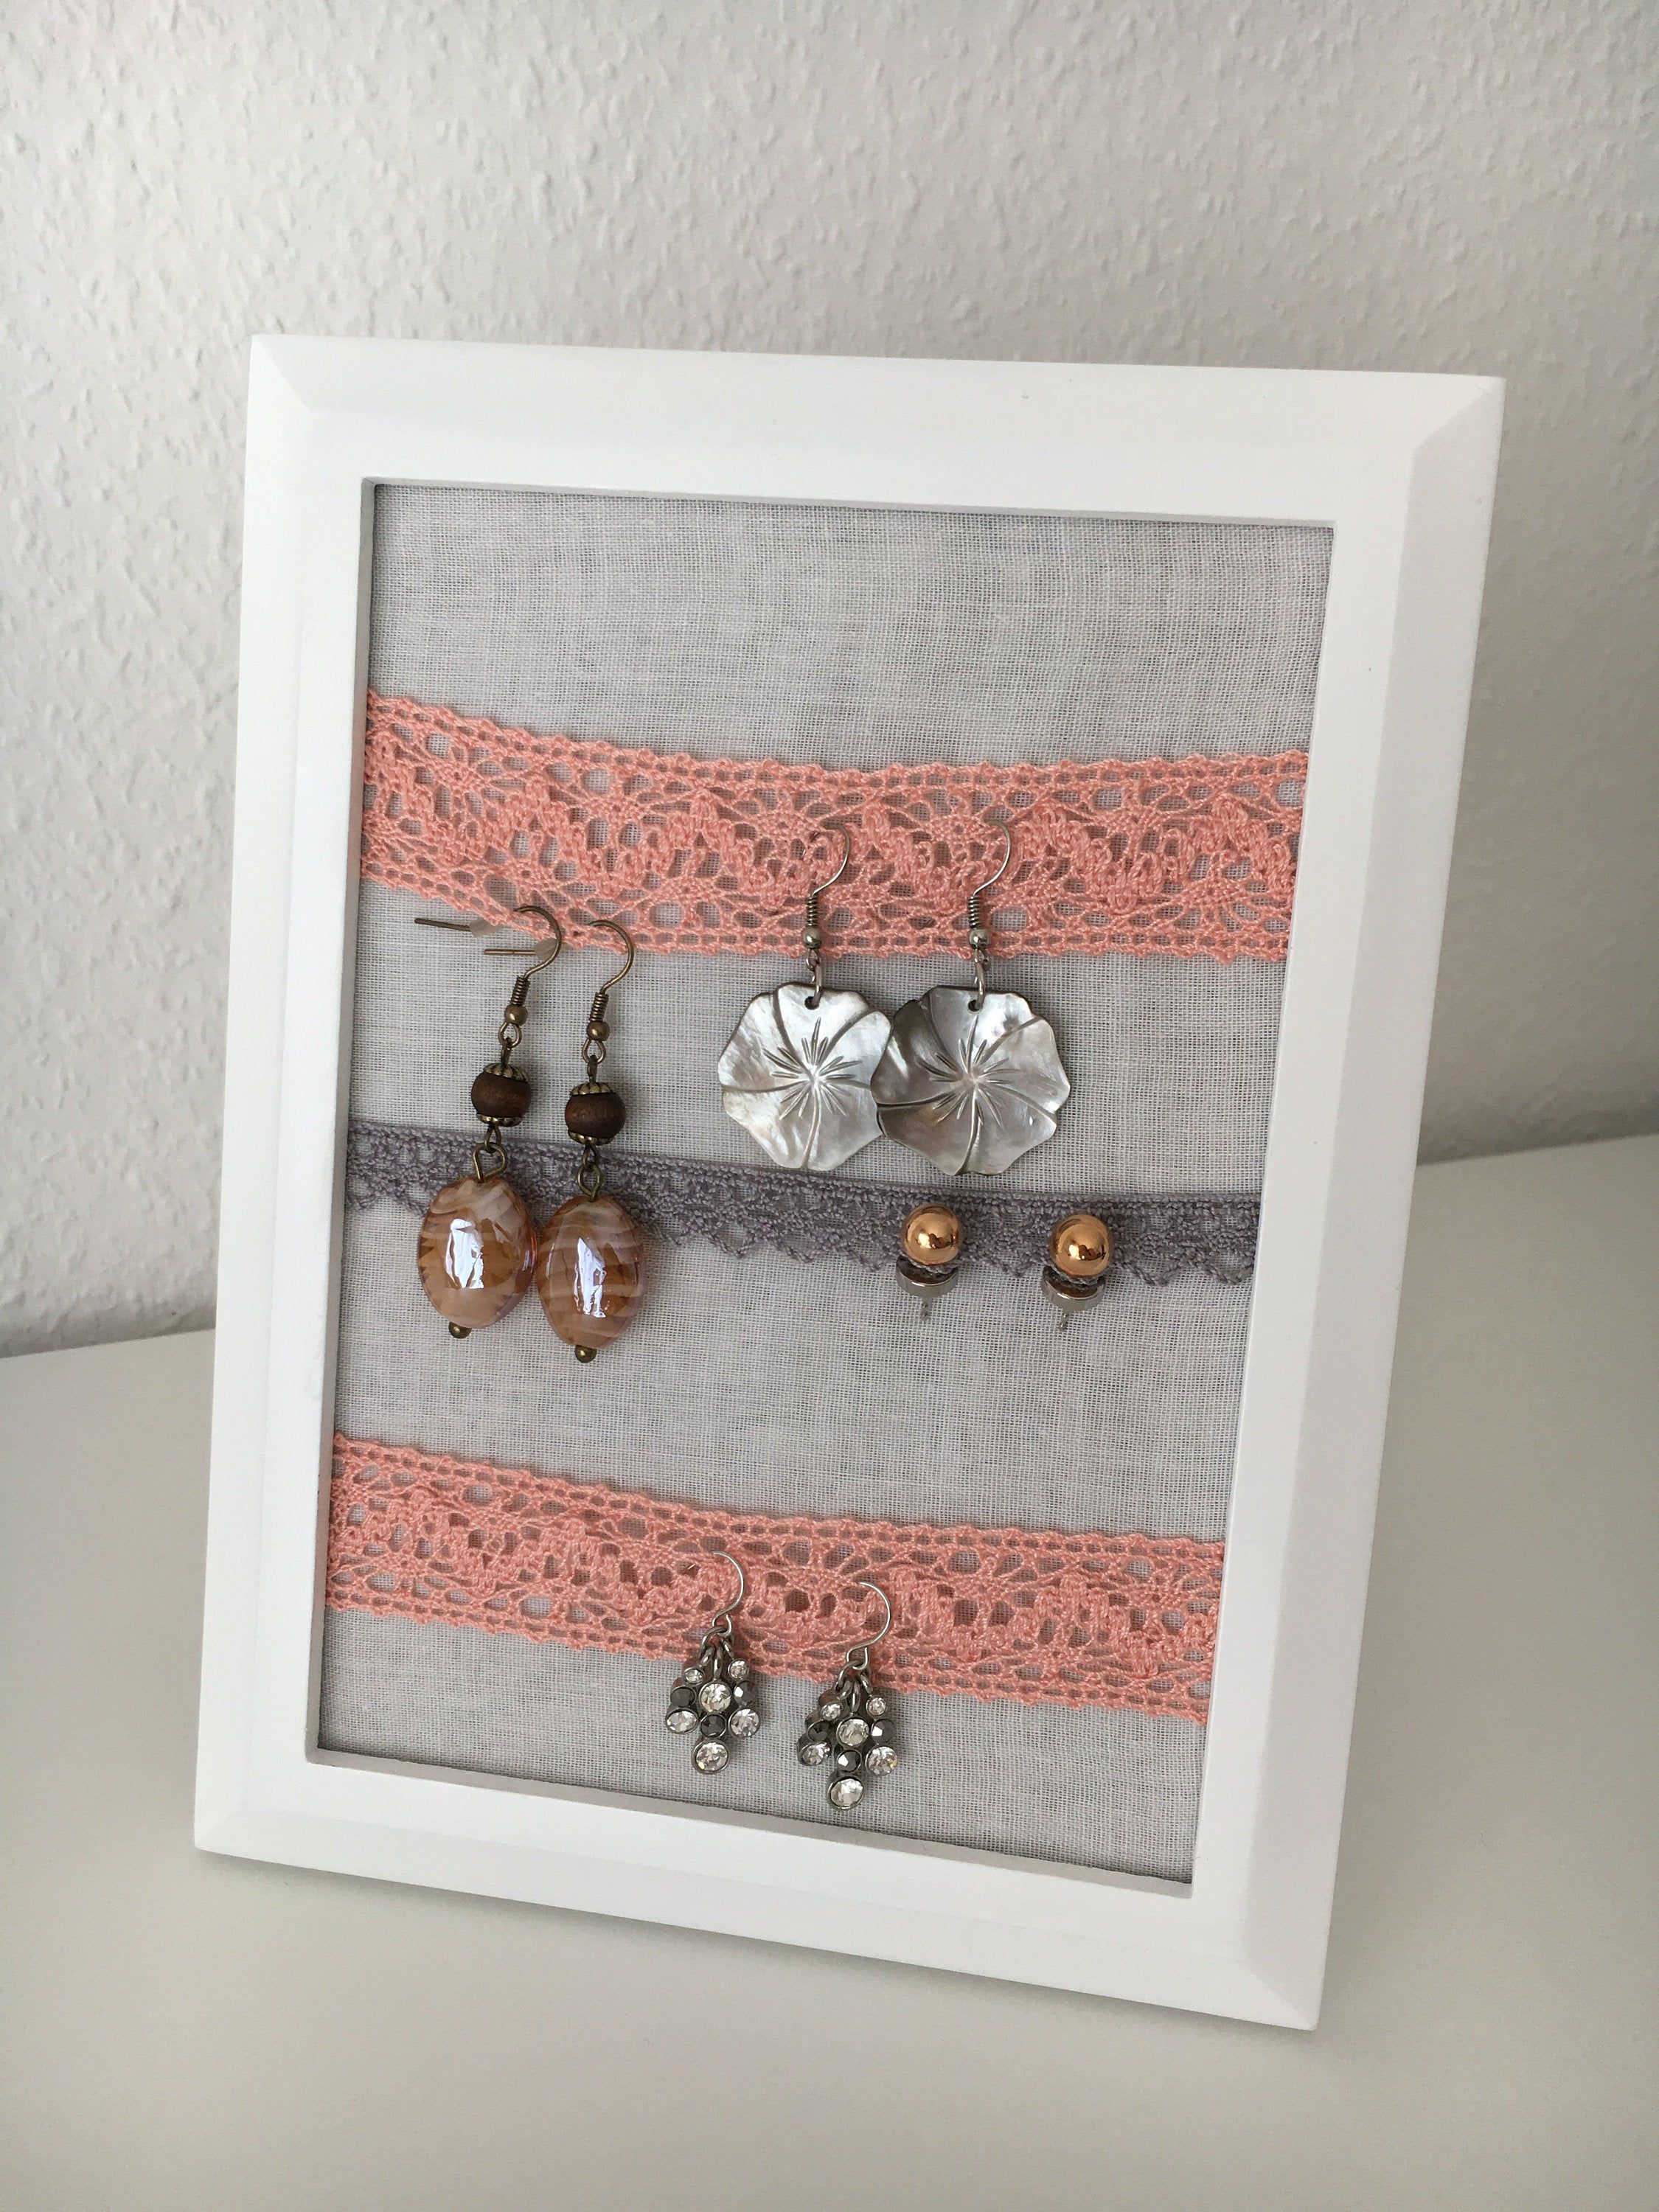 Photo of Jewelery stand for earrings